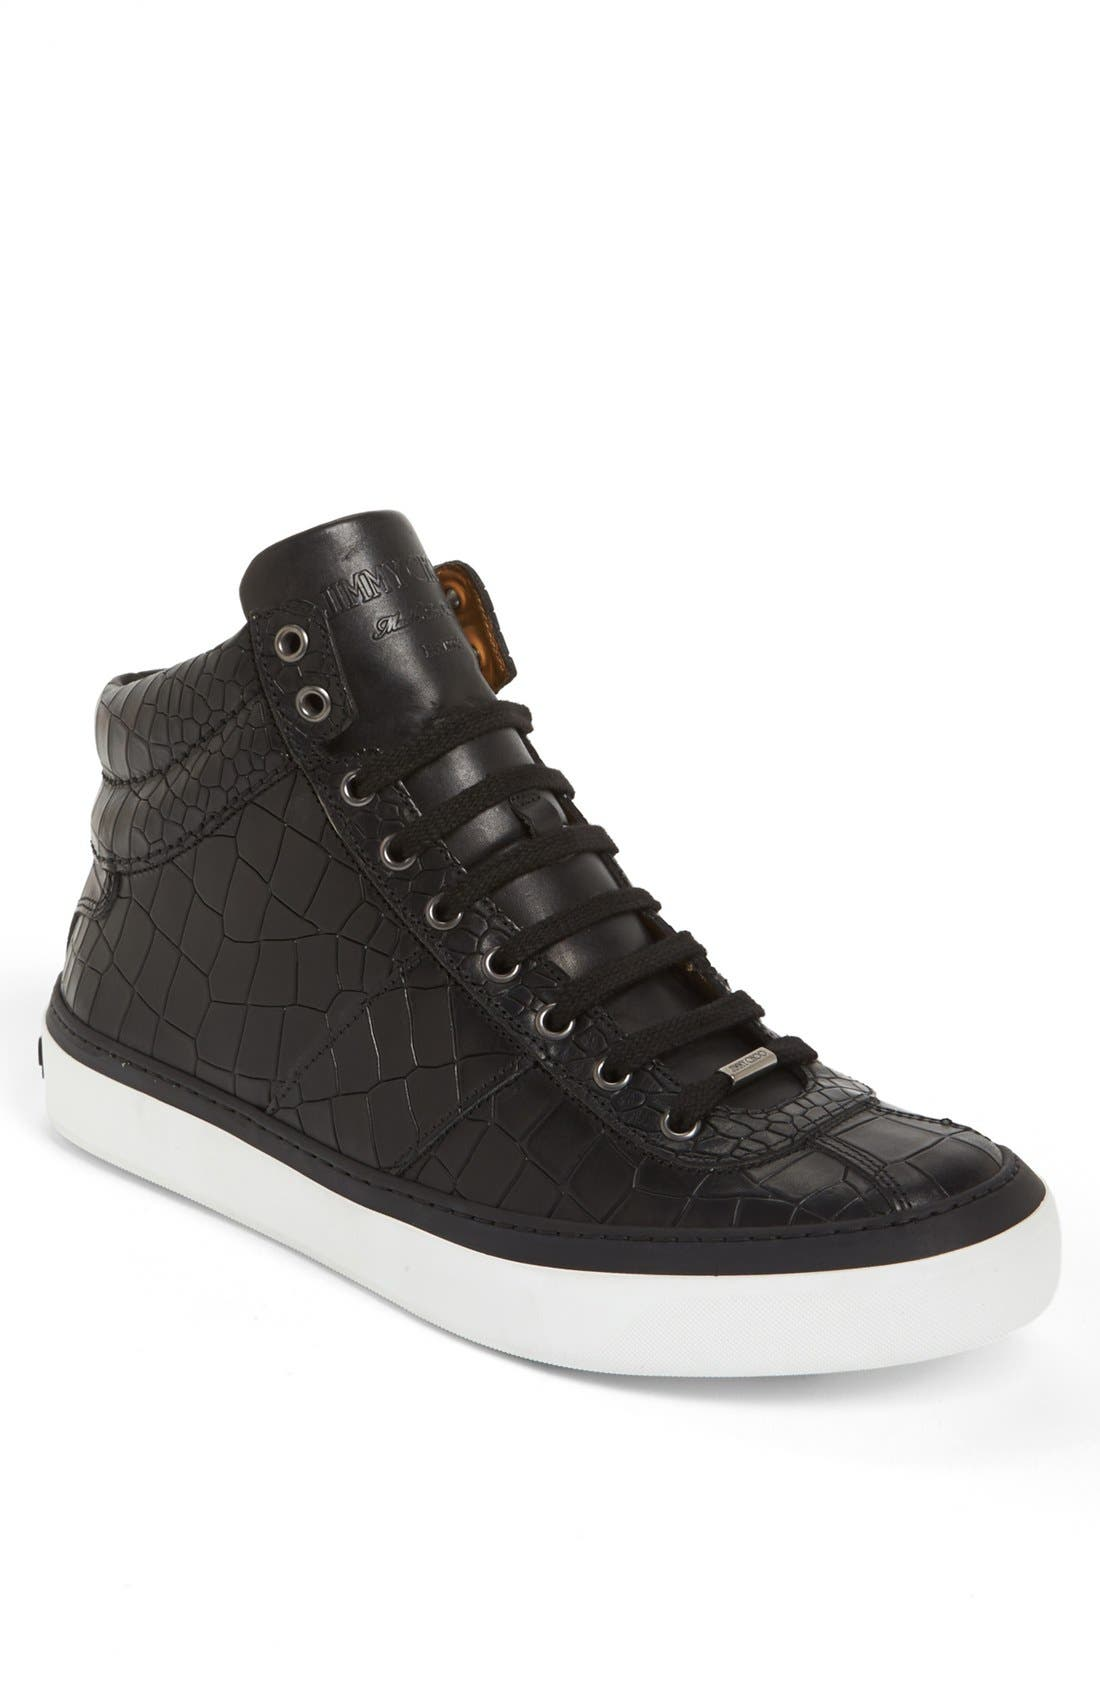 Belgravia High Top Sneaker,                         Main,                         color, Black